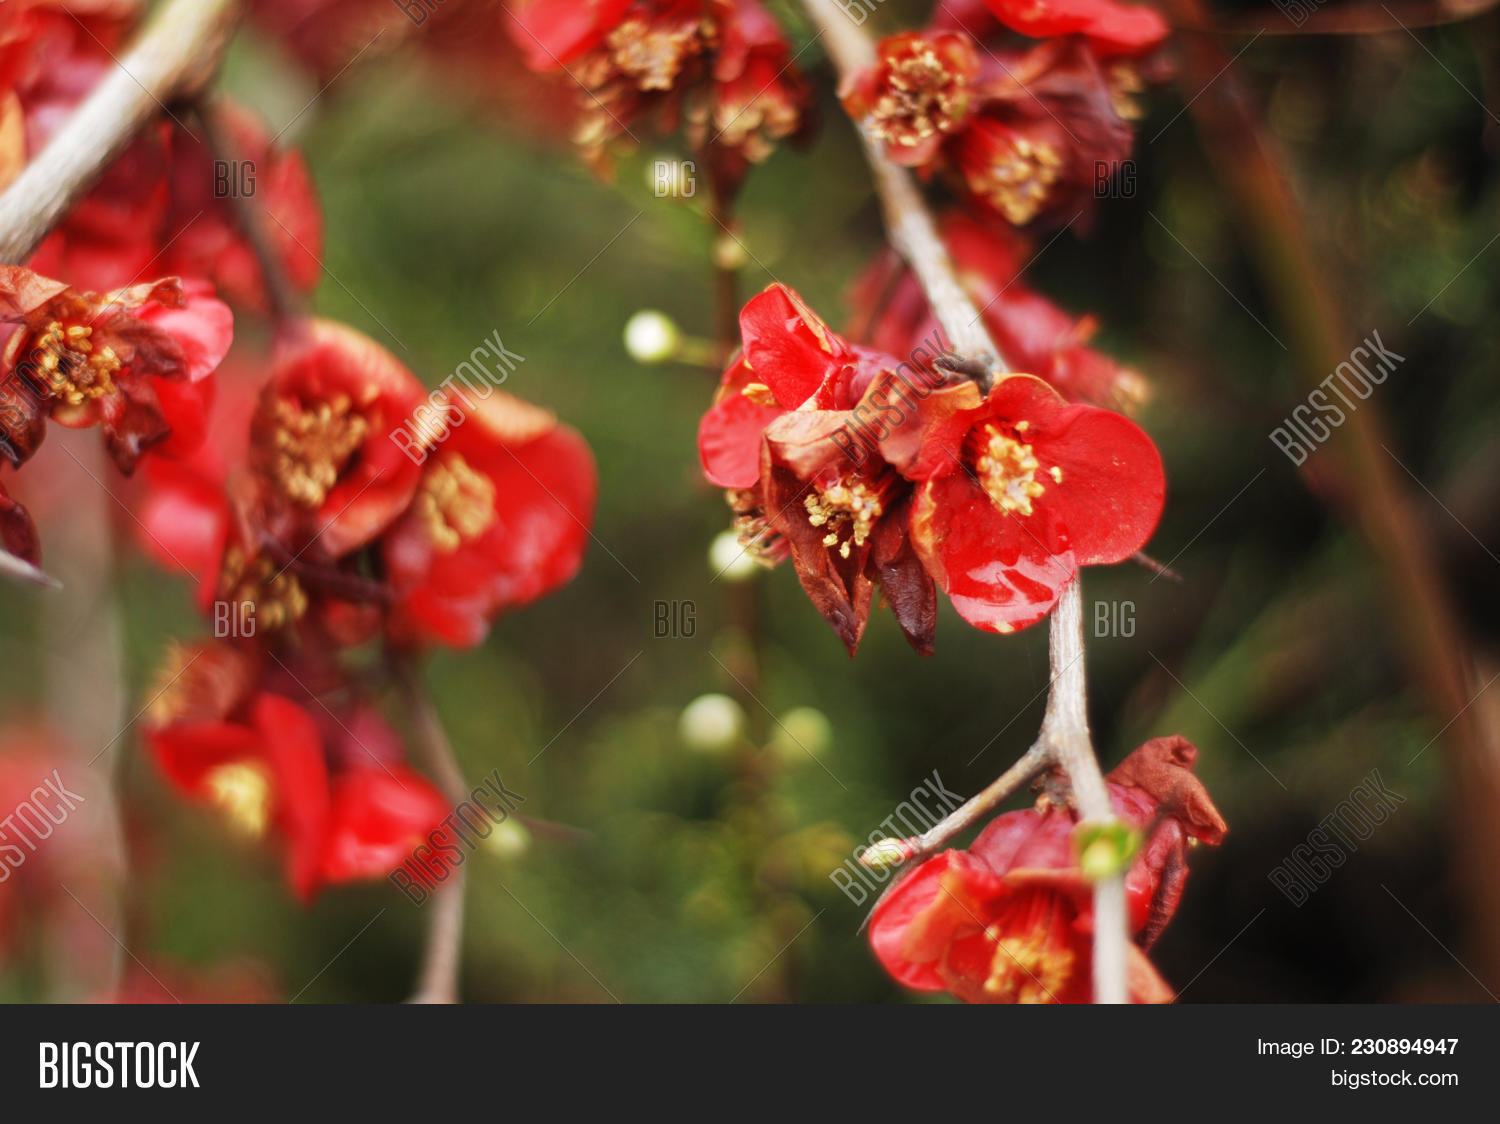 Red Colored Flowers Image & Photo (Free Trial) | Bigstock